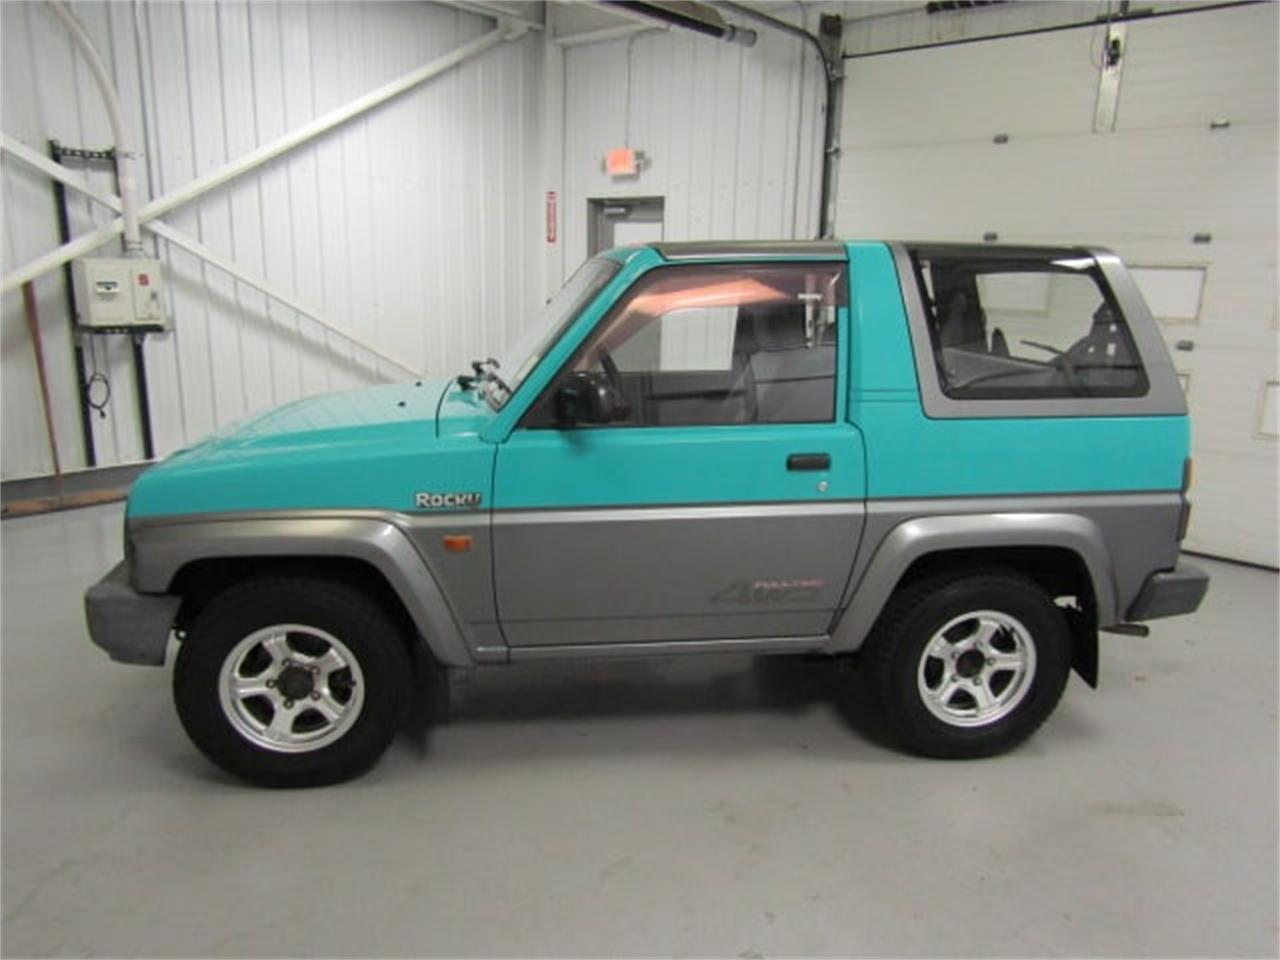 Large Picture of '91 Rocky - $8,989.00 - Q4MR